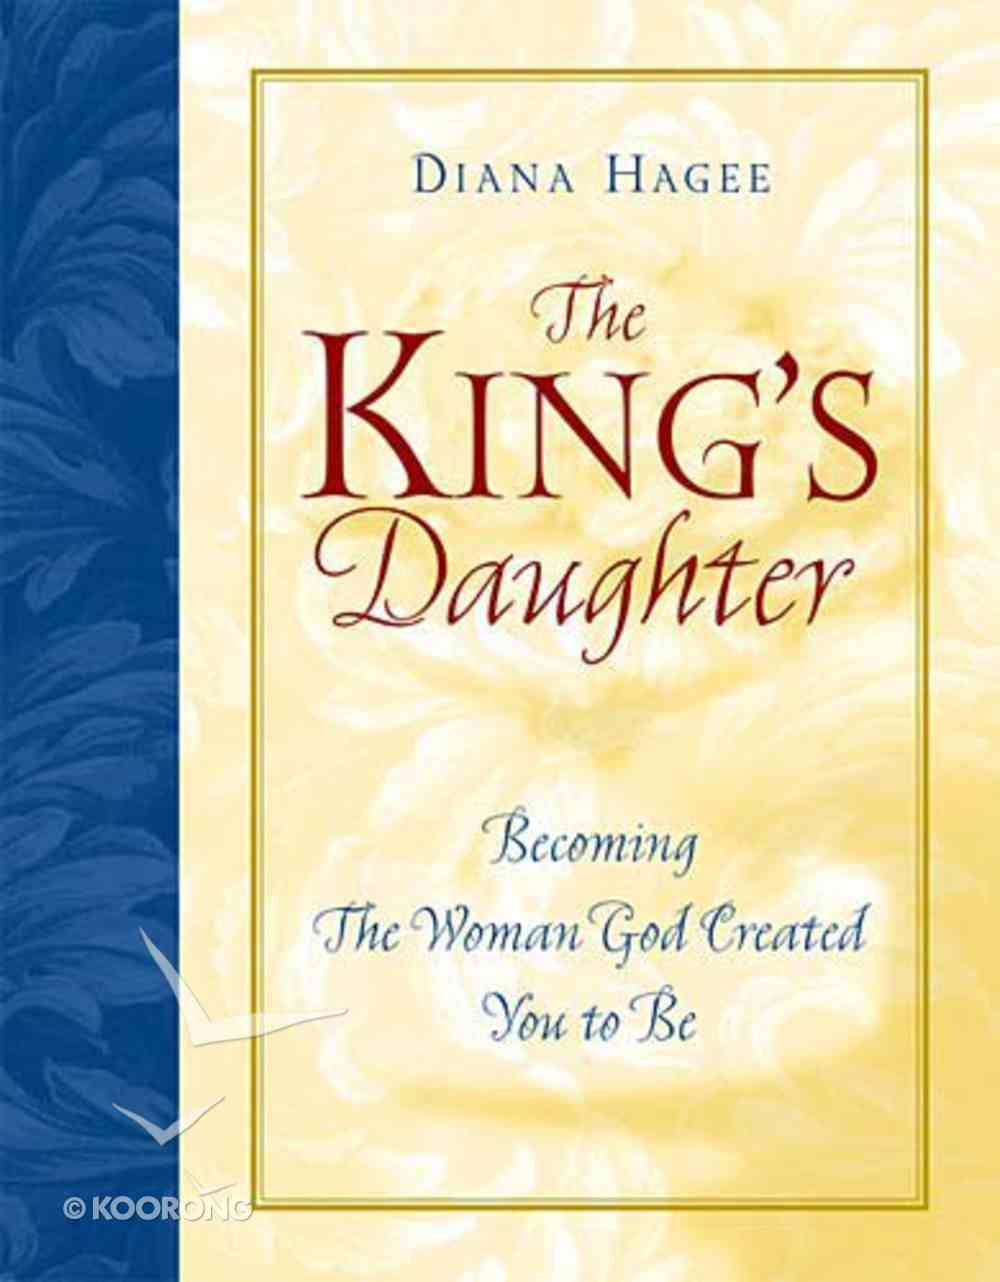 The King's Daughter Paperback